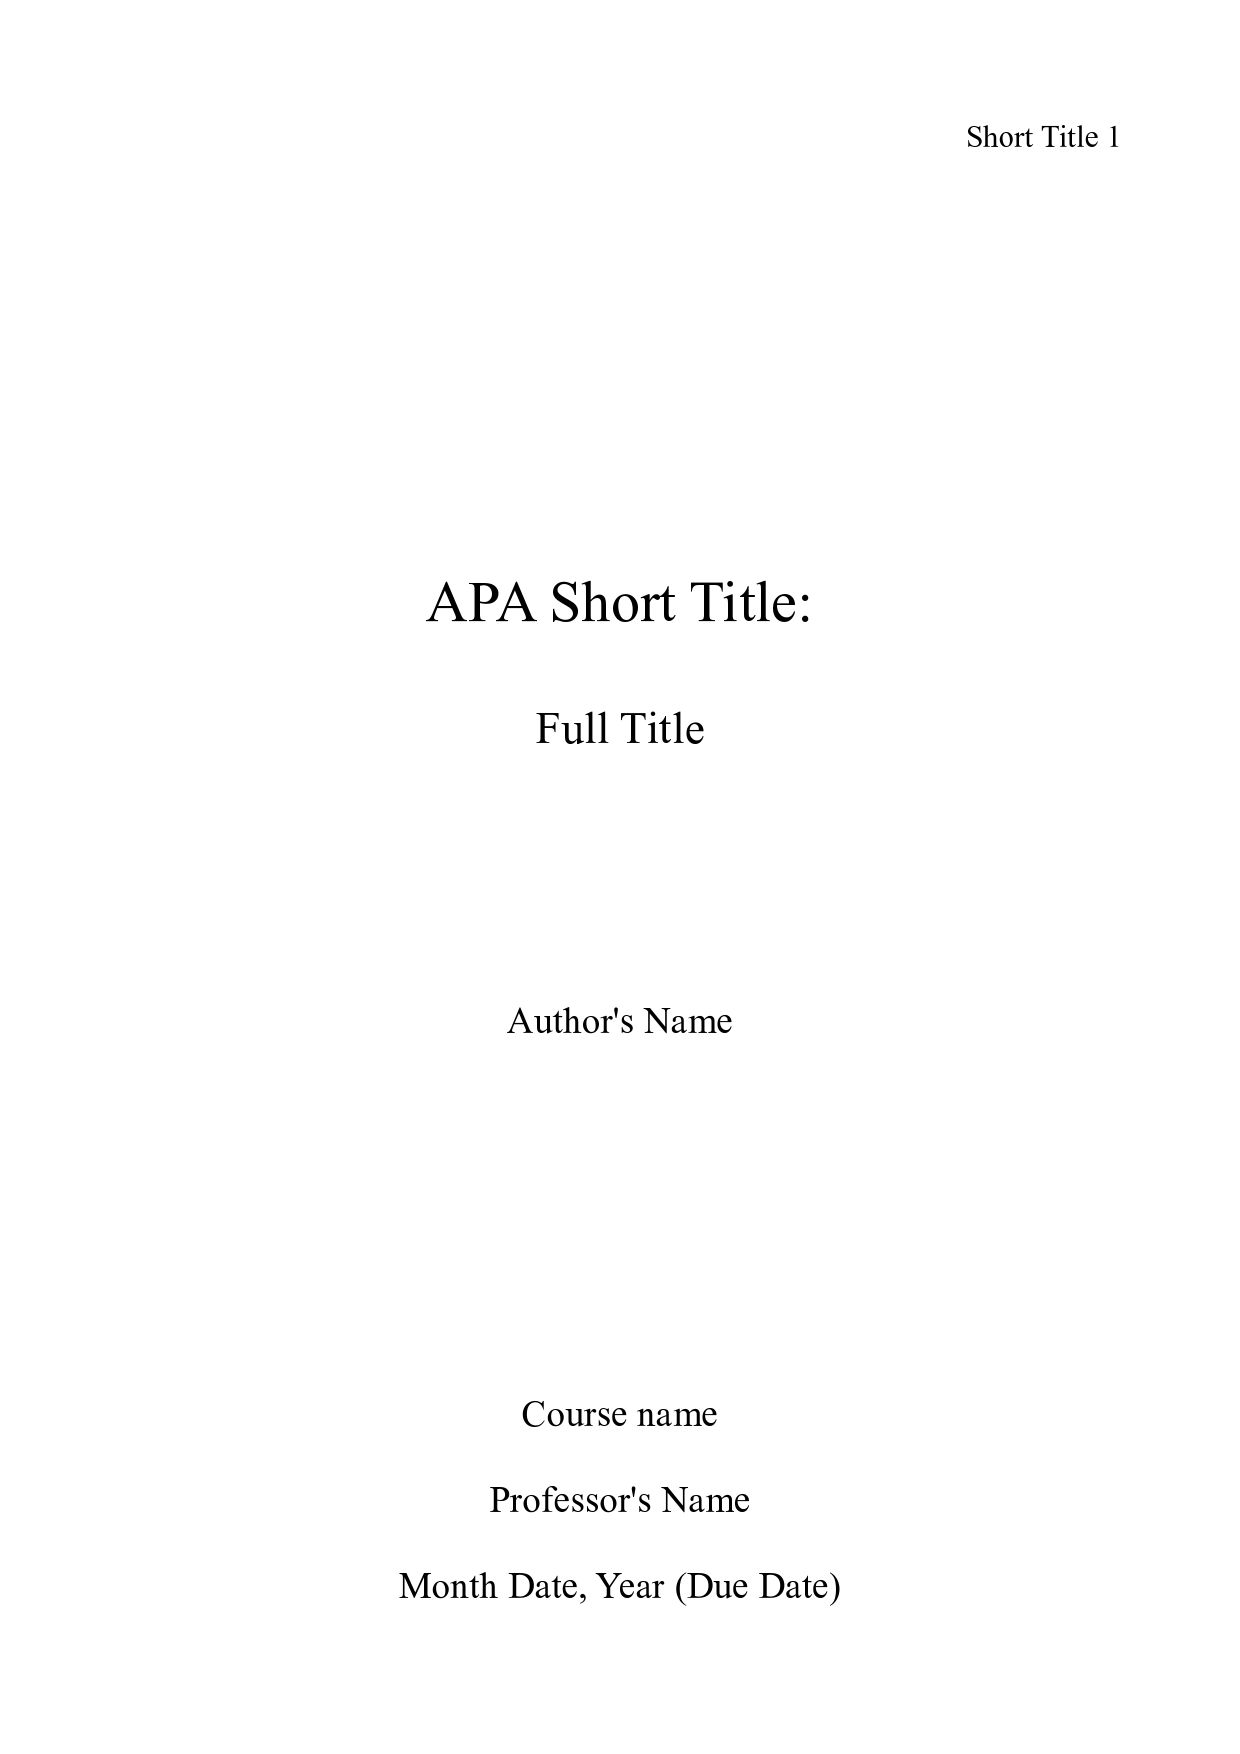 003 Research Paper Cover Page Apa Excellent Template Layout Format Sample Title Full